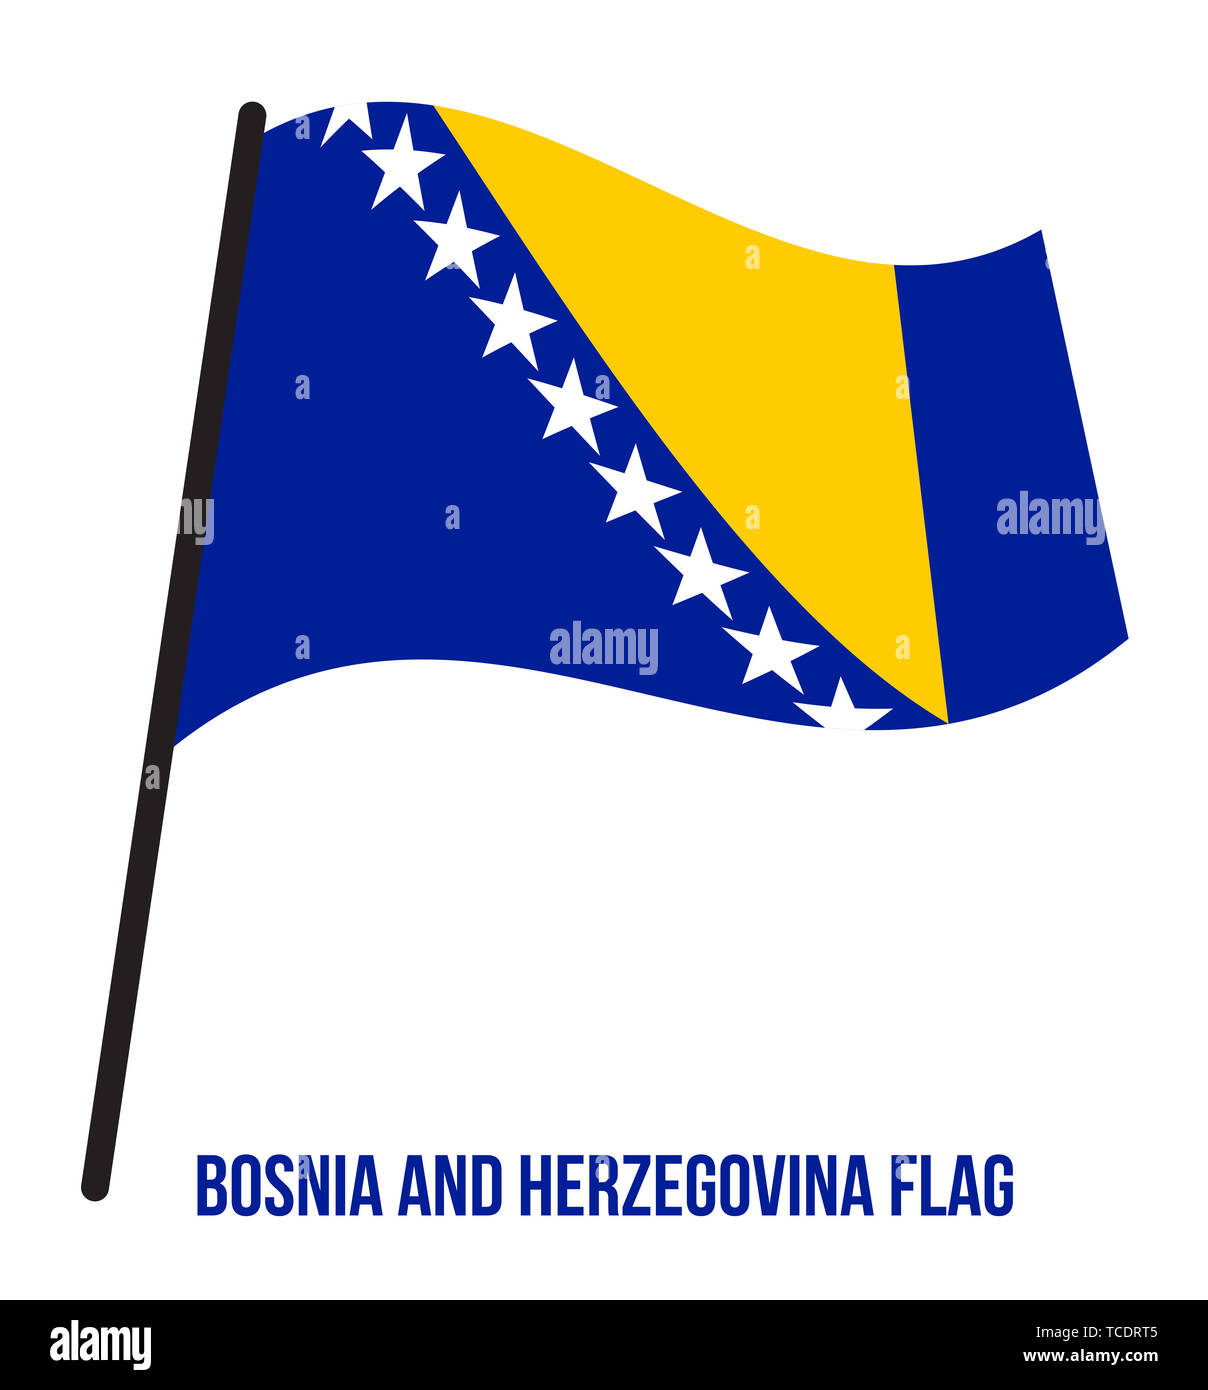 Bosnia and Herzegovina Flag Waving Vector Illustration on White Background. Bosnia and Herzegovina National Flag. - Stock Image